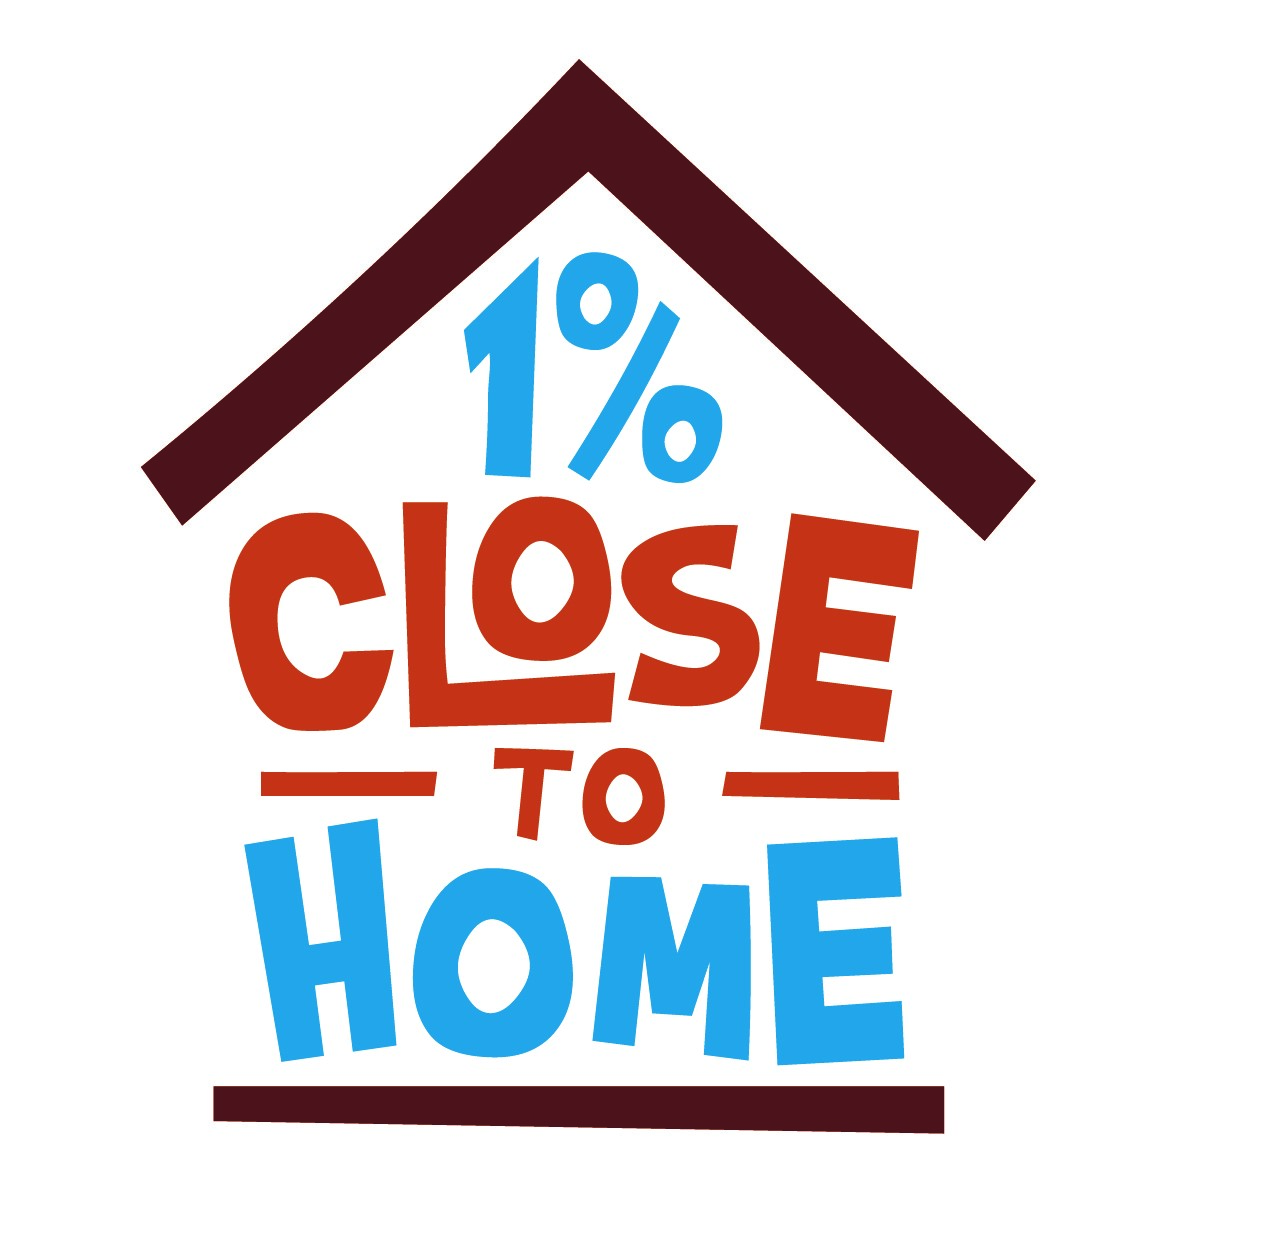 1 percent close to home logo